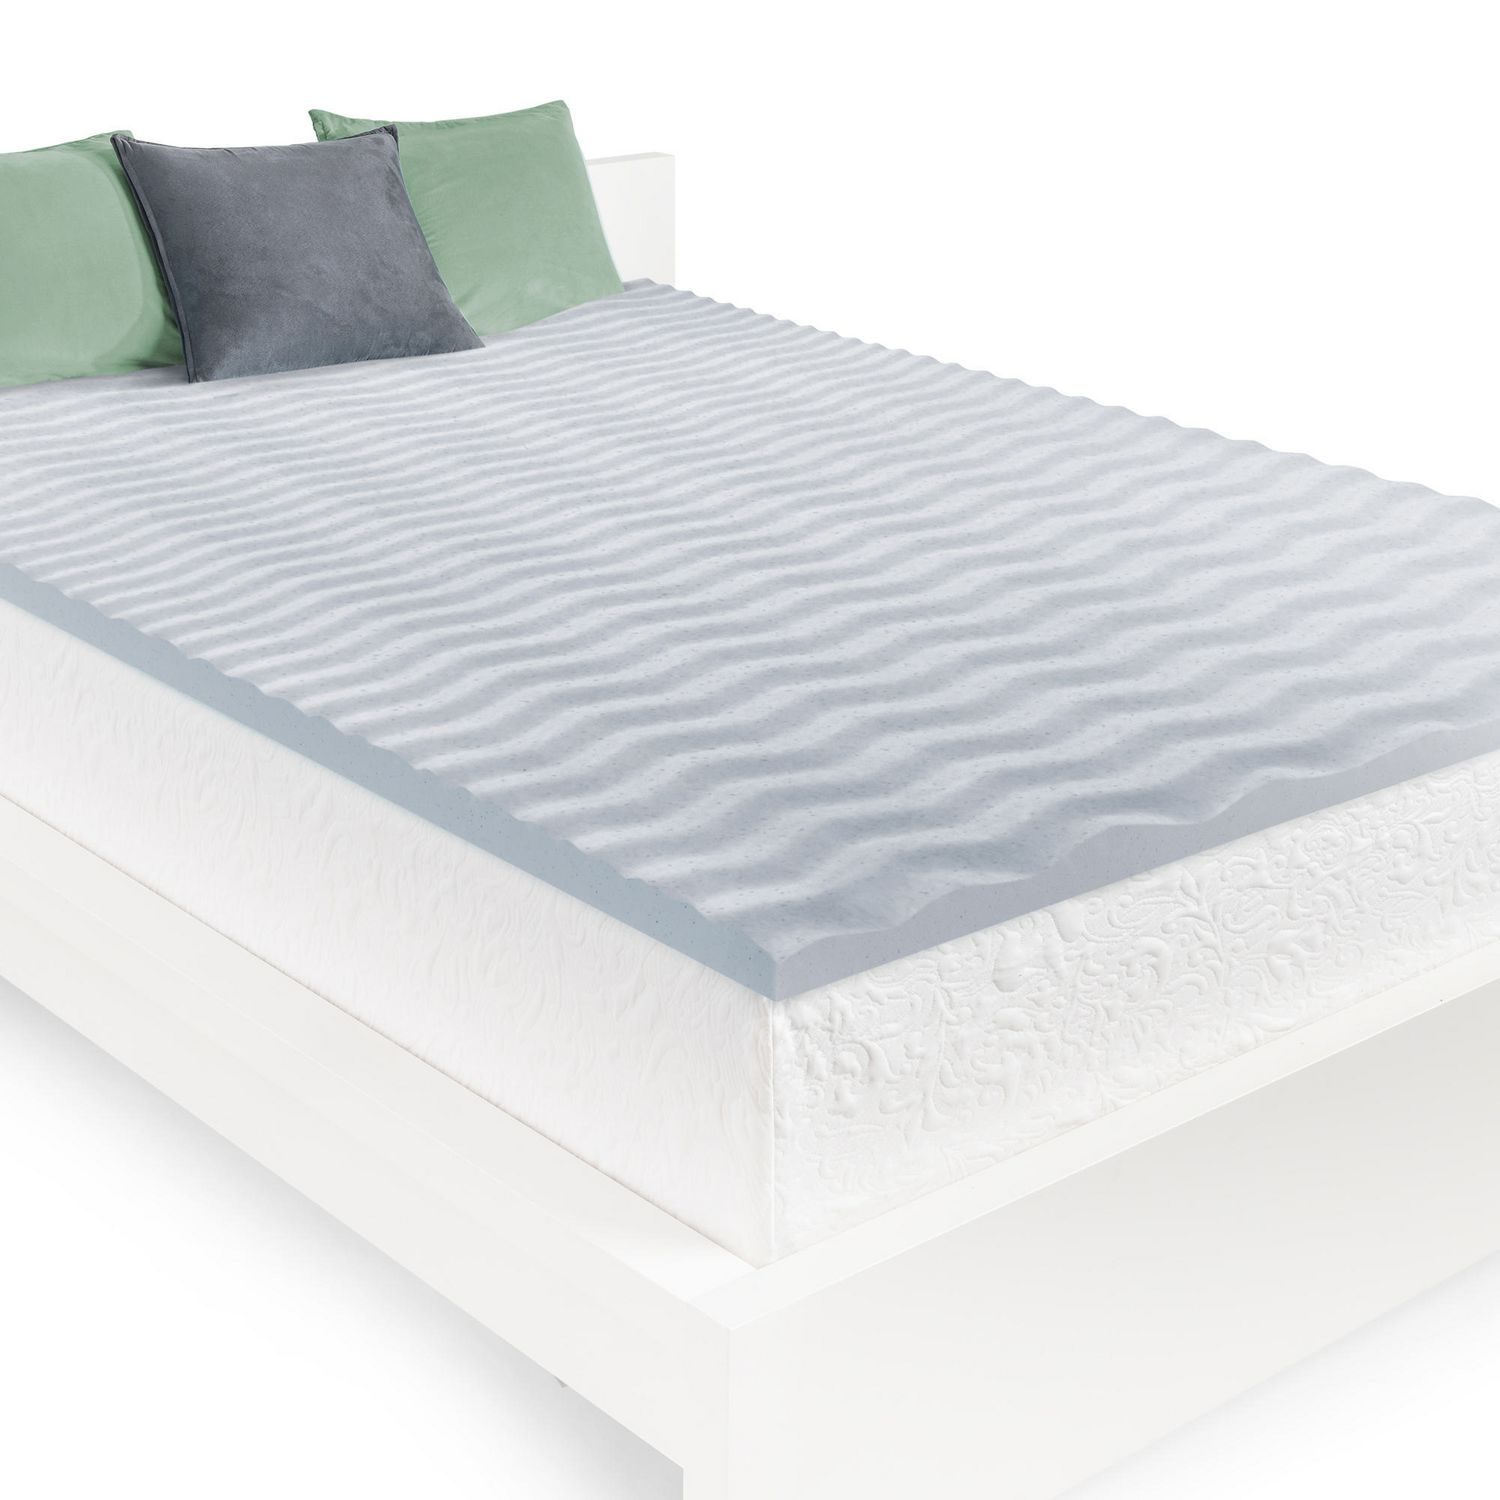 Homedics 2 Cool Wave Memory Foam Mattress Topper Walmart Canada